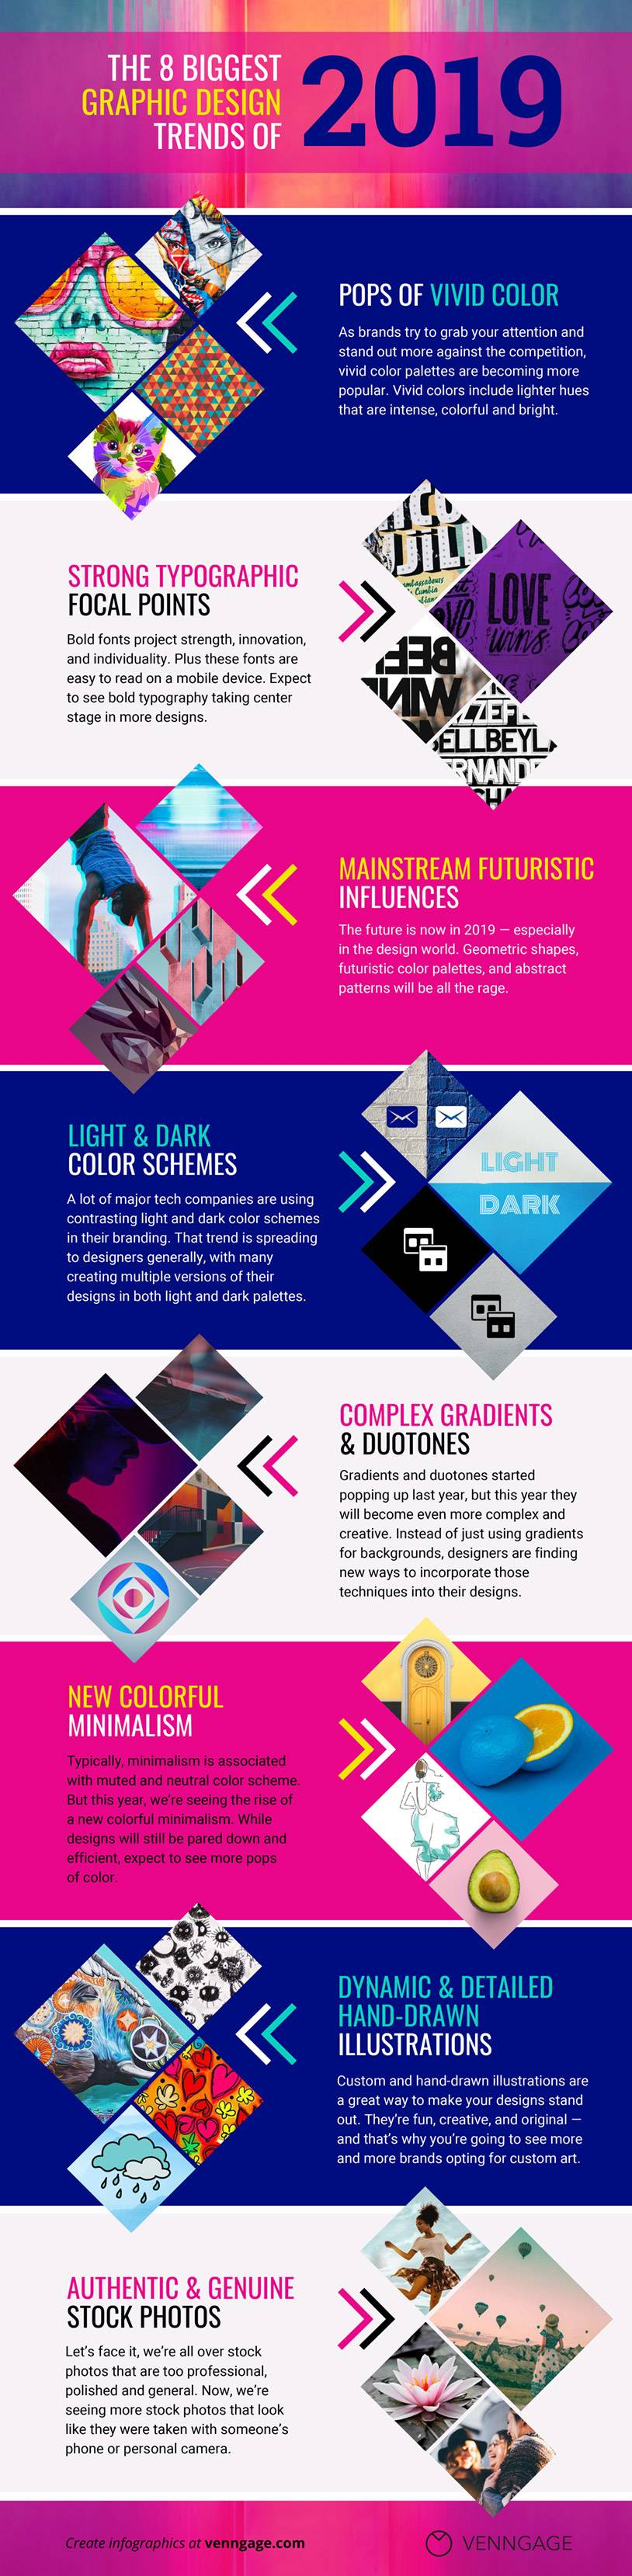 Image detailing new graphic design trends for 2019 useful for new website design